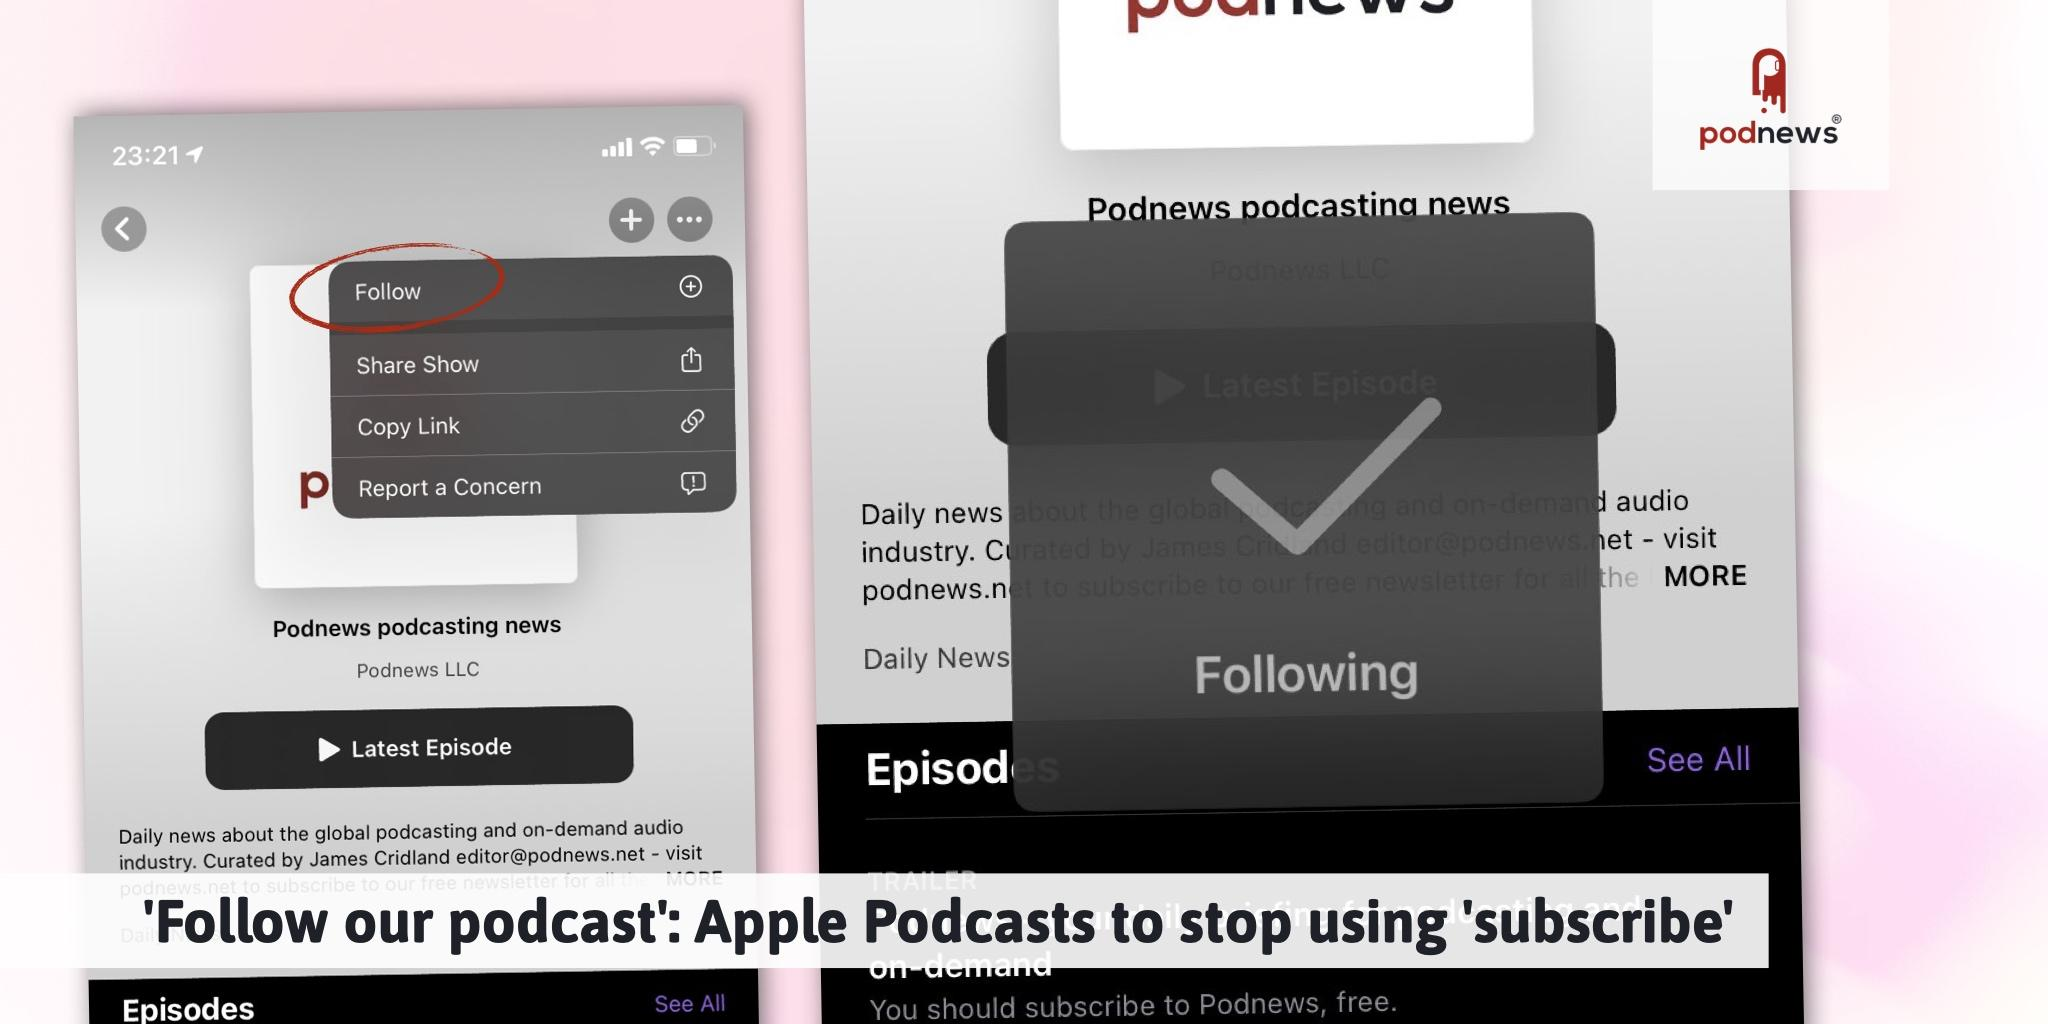 'Follow our podcast': Apple Podcasts to stop using 'subscribe'